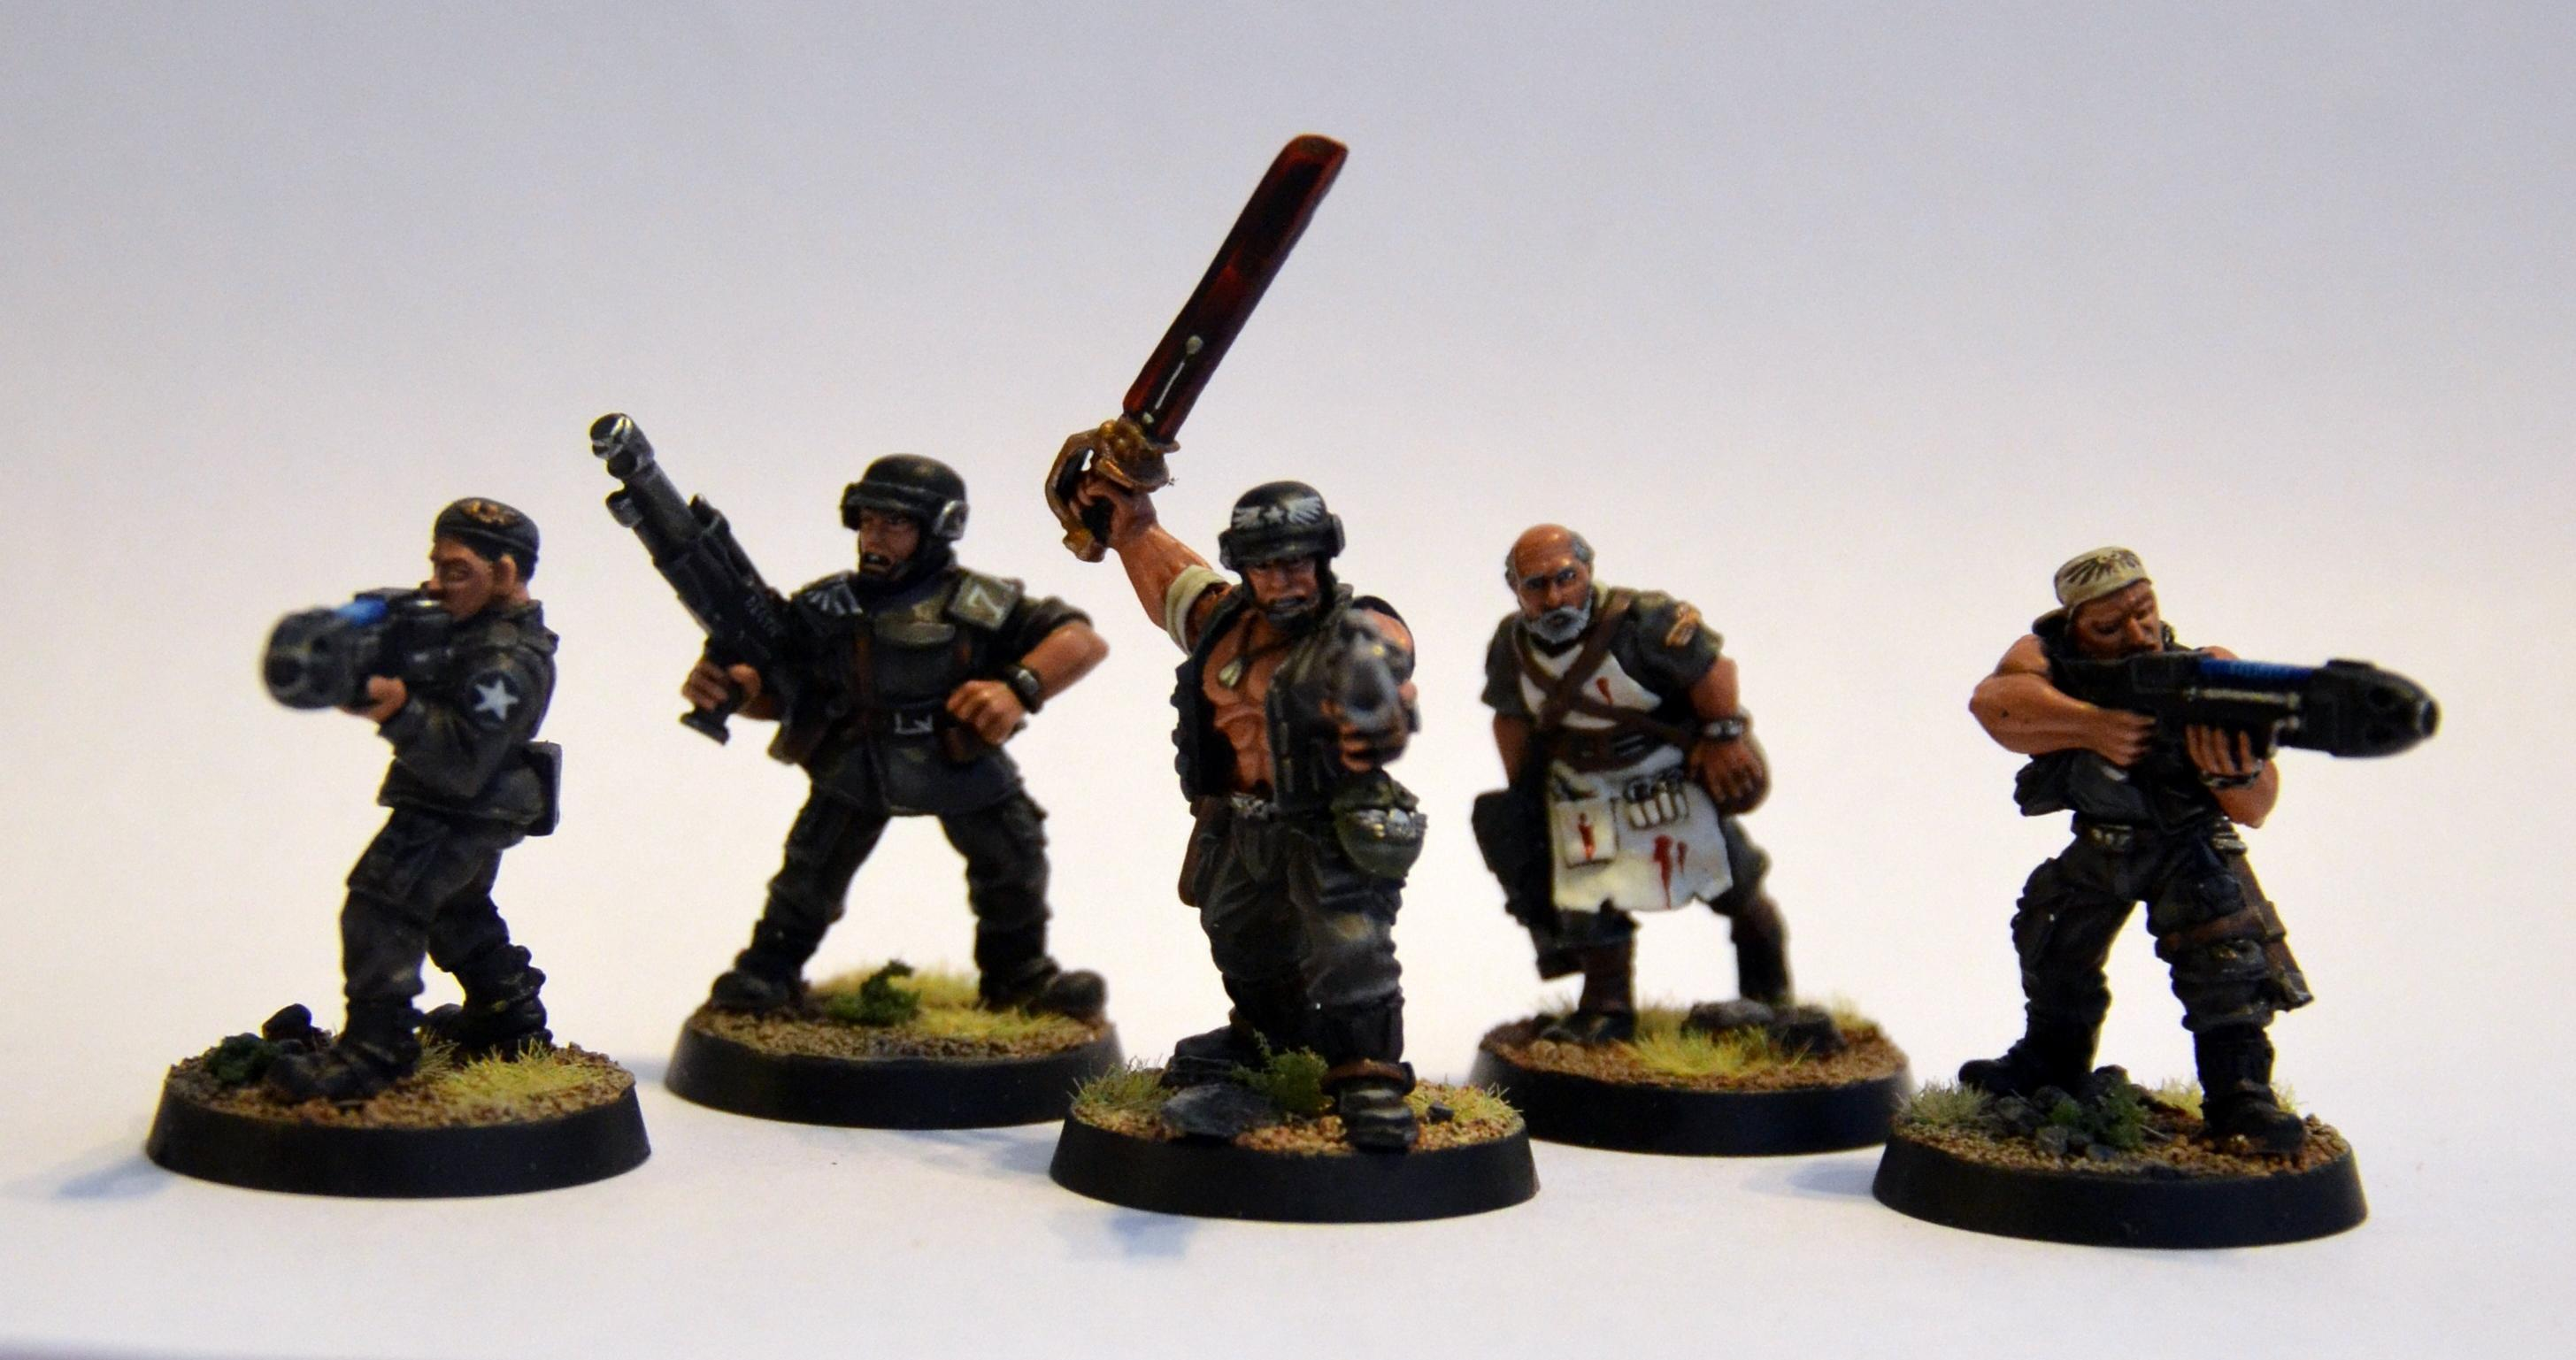 Astra Militarum, Cadians, Imperial Guard, Warhammer 40,000